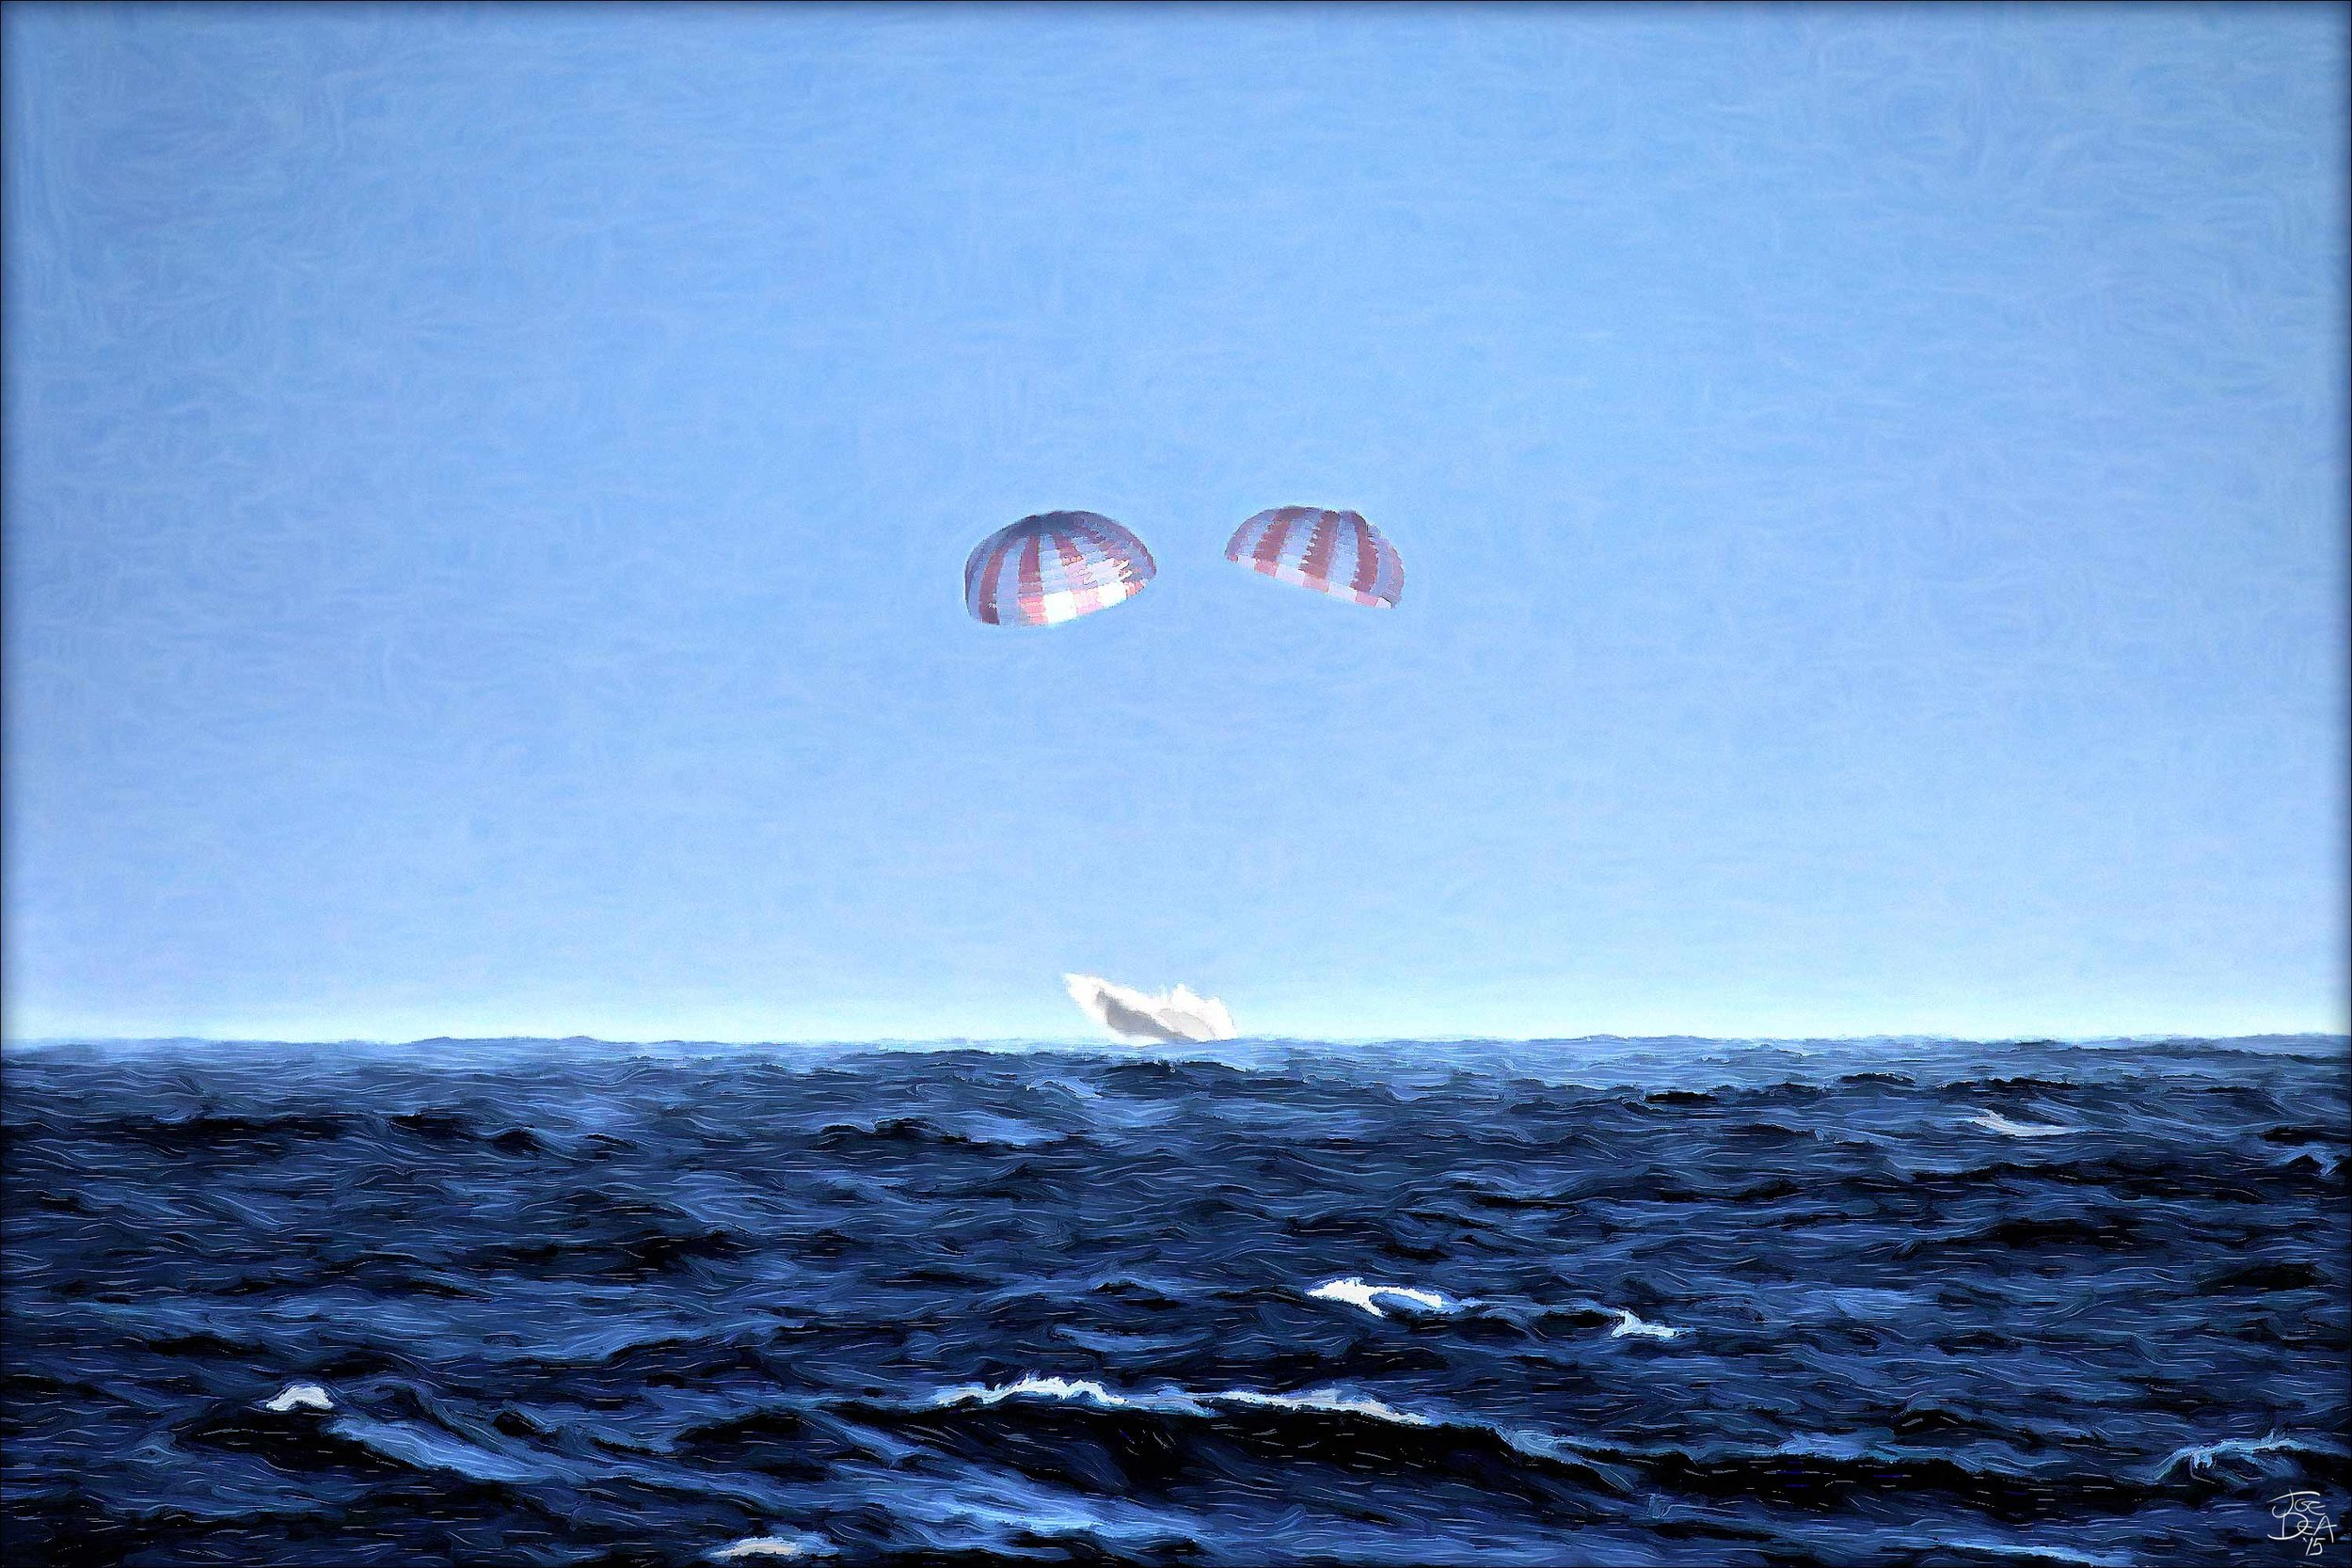 Joe-Dea-SpaceX-Splashdown-Painting-LB.jpg